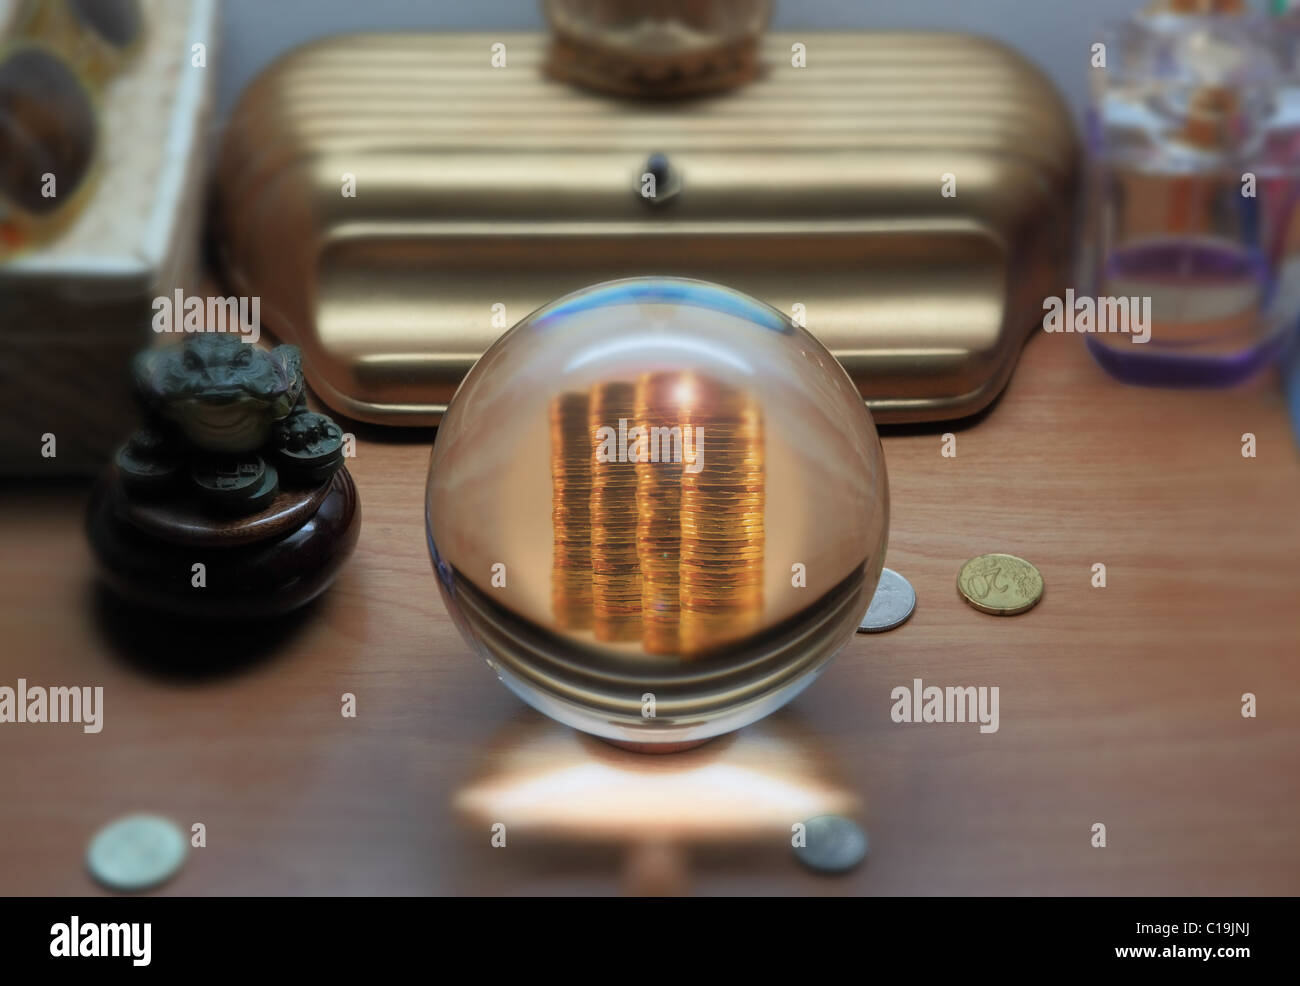 stack of coins seen in crystal ball, coins and various objects are also seen on table - Stock Image